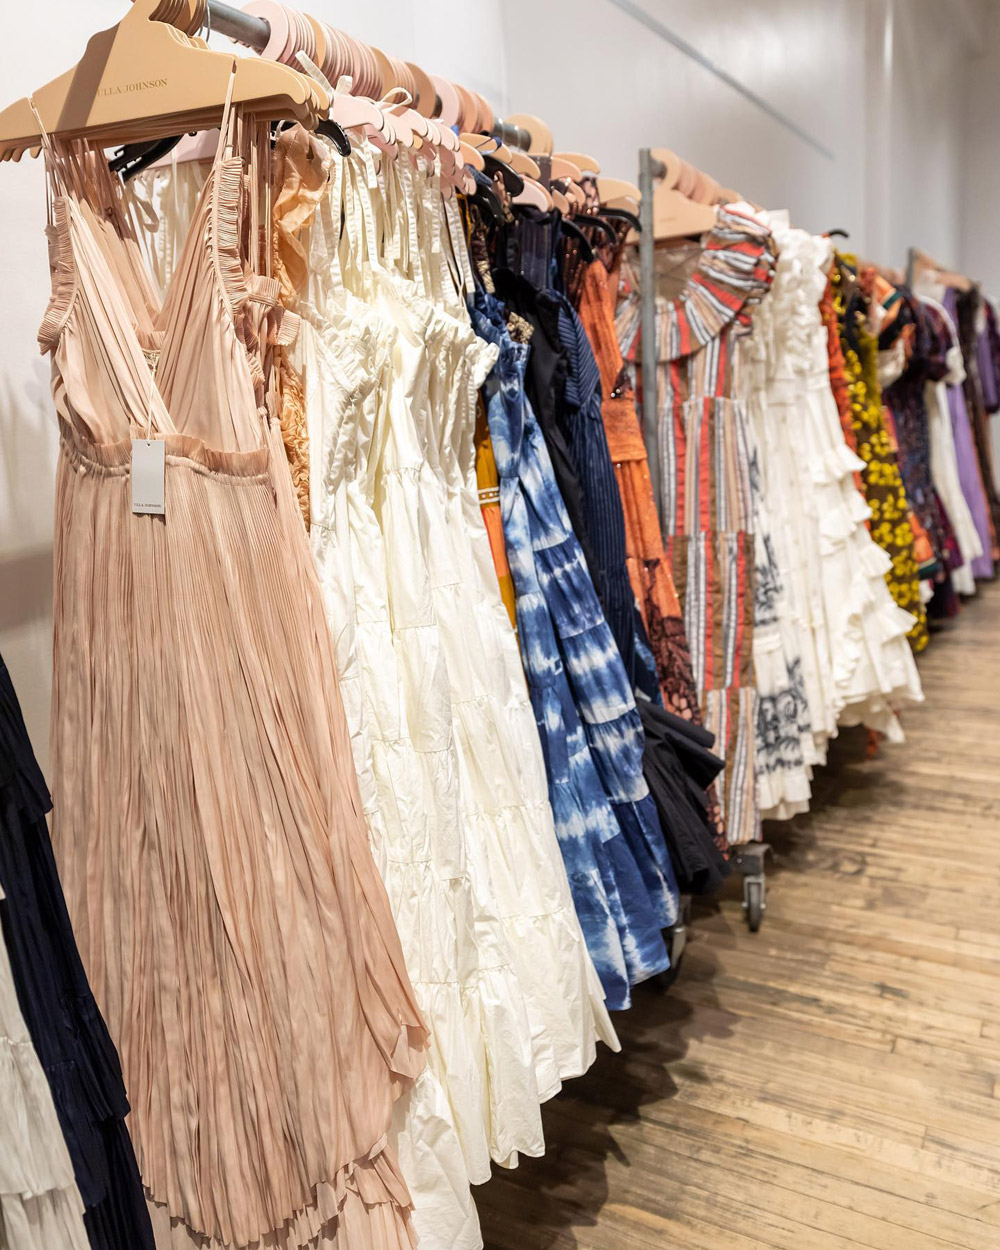 Ulla Johnson Sample Sale in Images